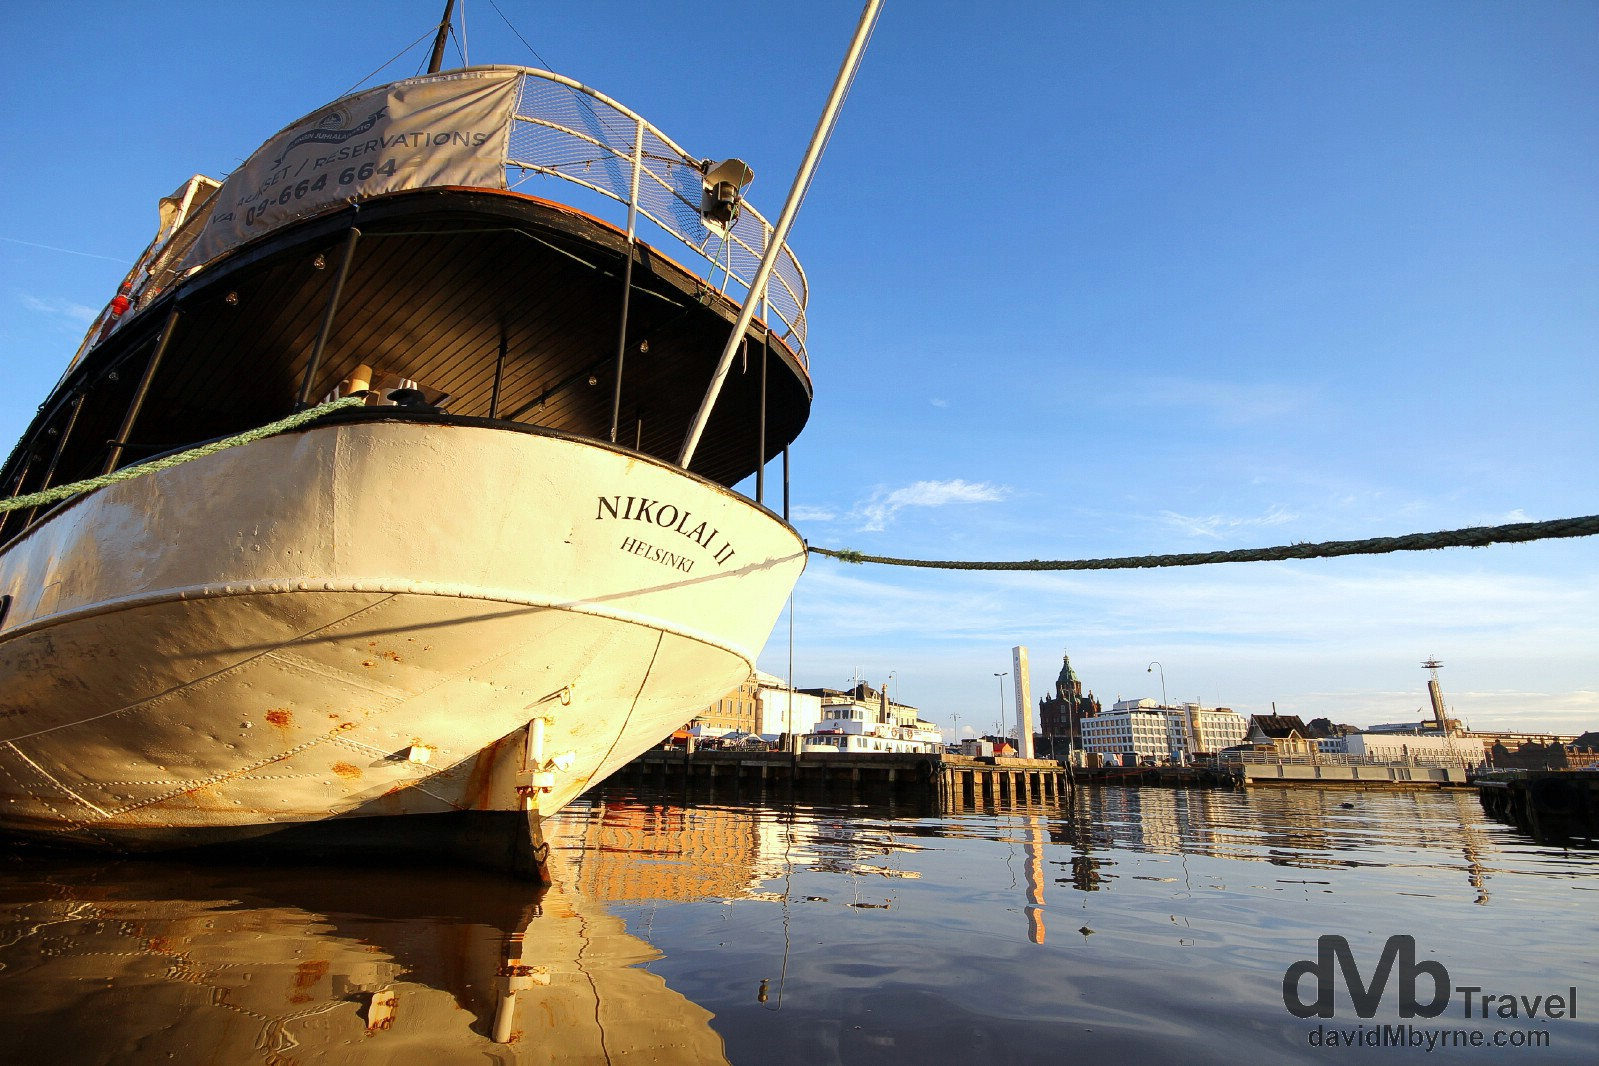 A café boat moored in Eteldsatama beside the morning Kauppatori (Fish Market) in Helsinki, Finland. November 24th 2012.